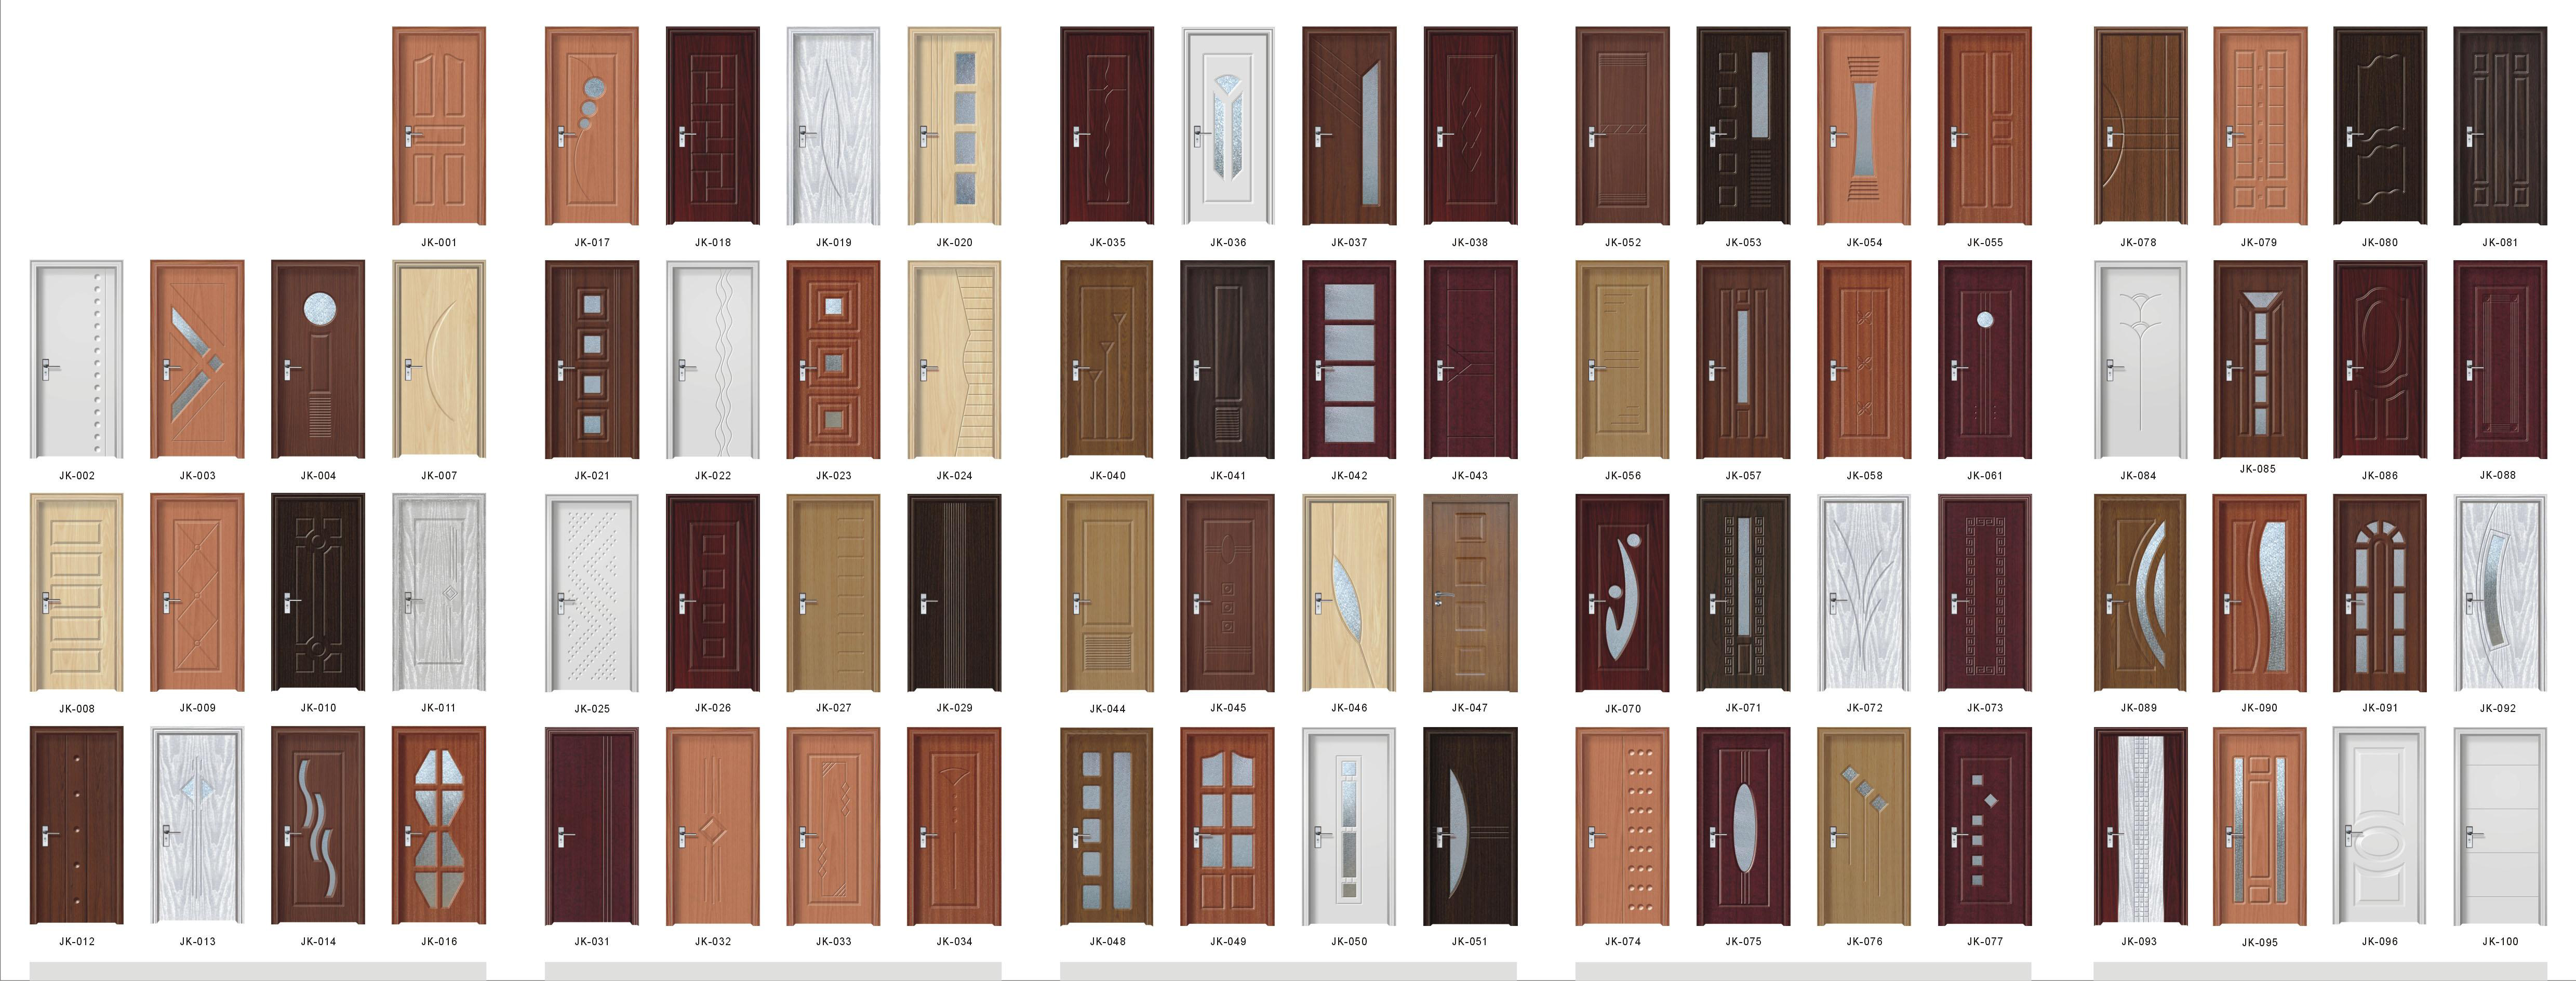 Commercial Interior Door Types